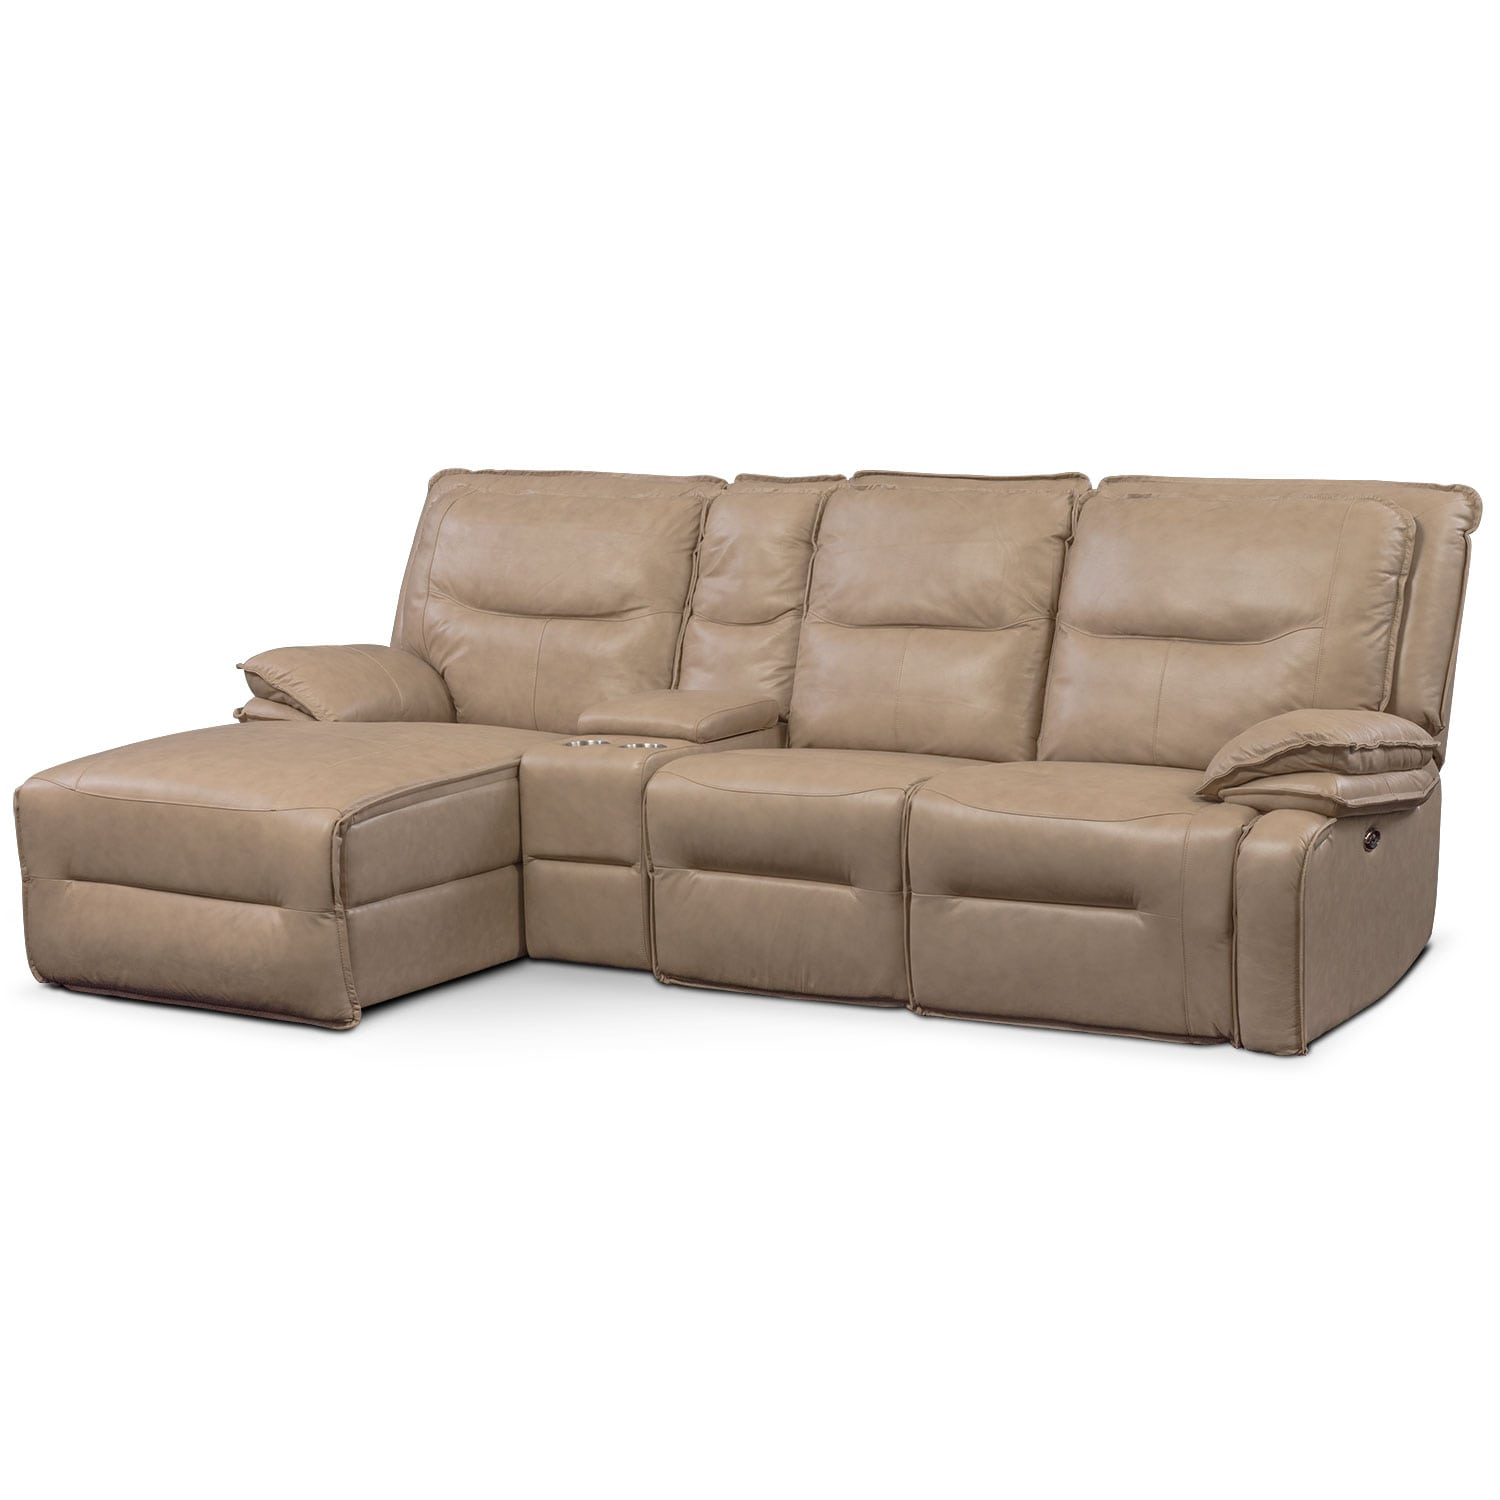 Living Room Furniture - Nikki 4-Piece Power Reclining Sectional with Left-Facing Chaise - Taupe